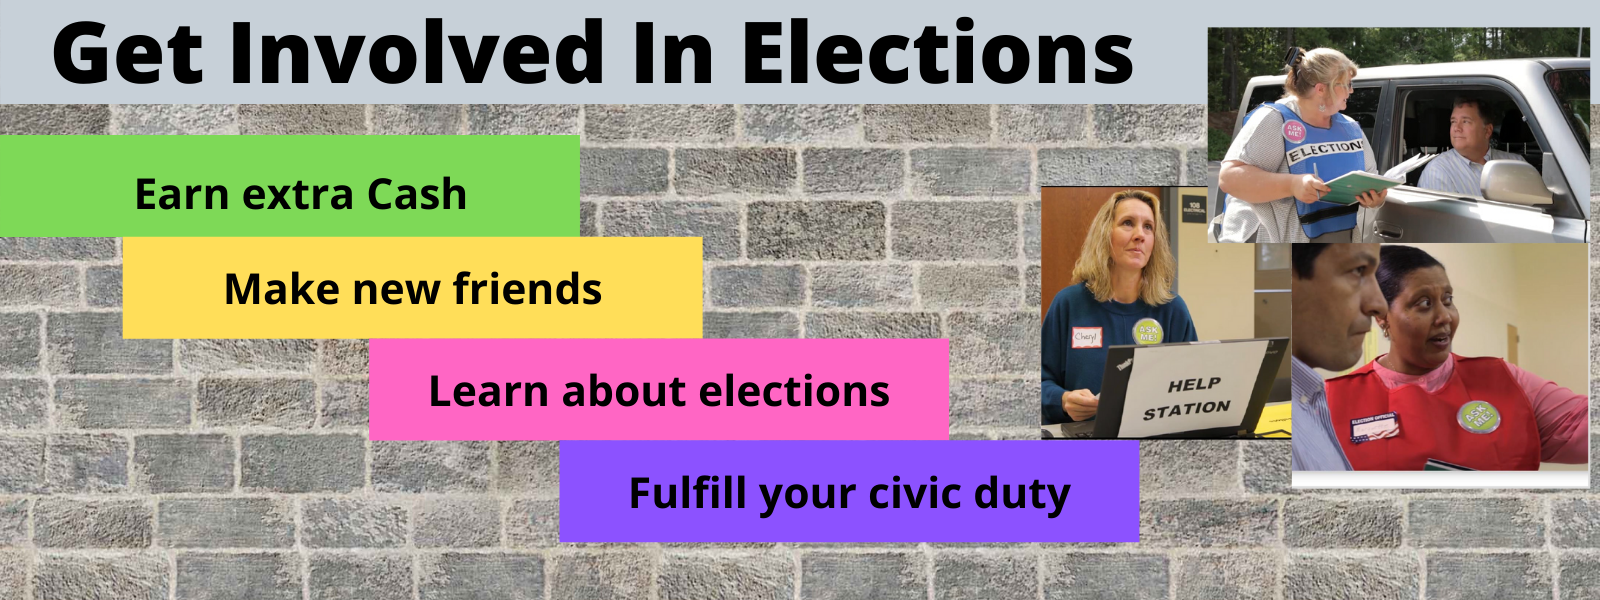 Get Involved In Elections